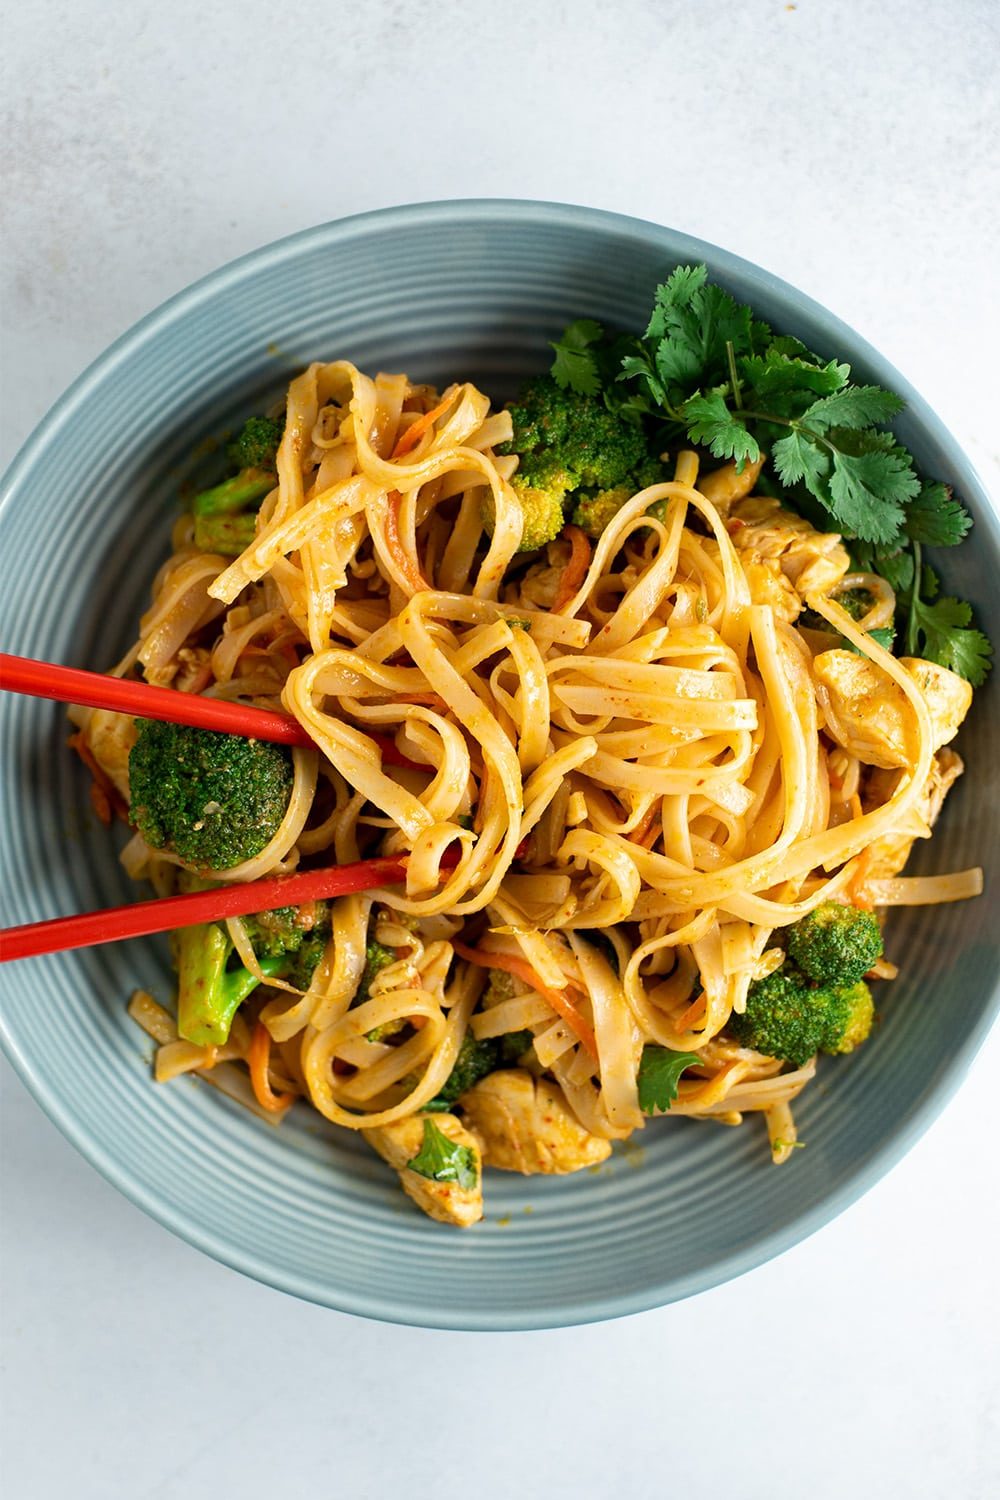 Spicy Coconut Curry Chicken and Rice Noodles Recipe